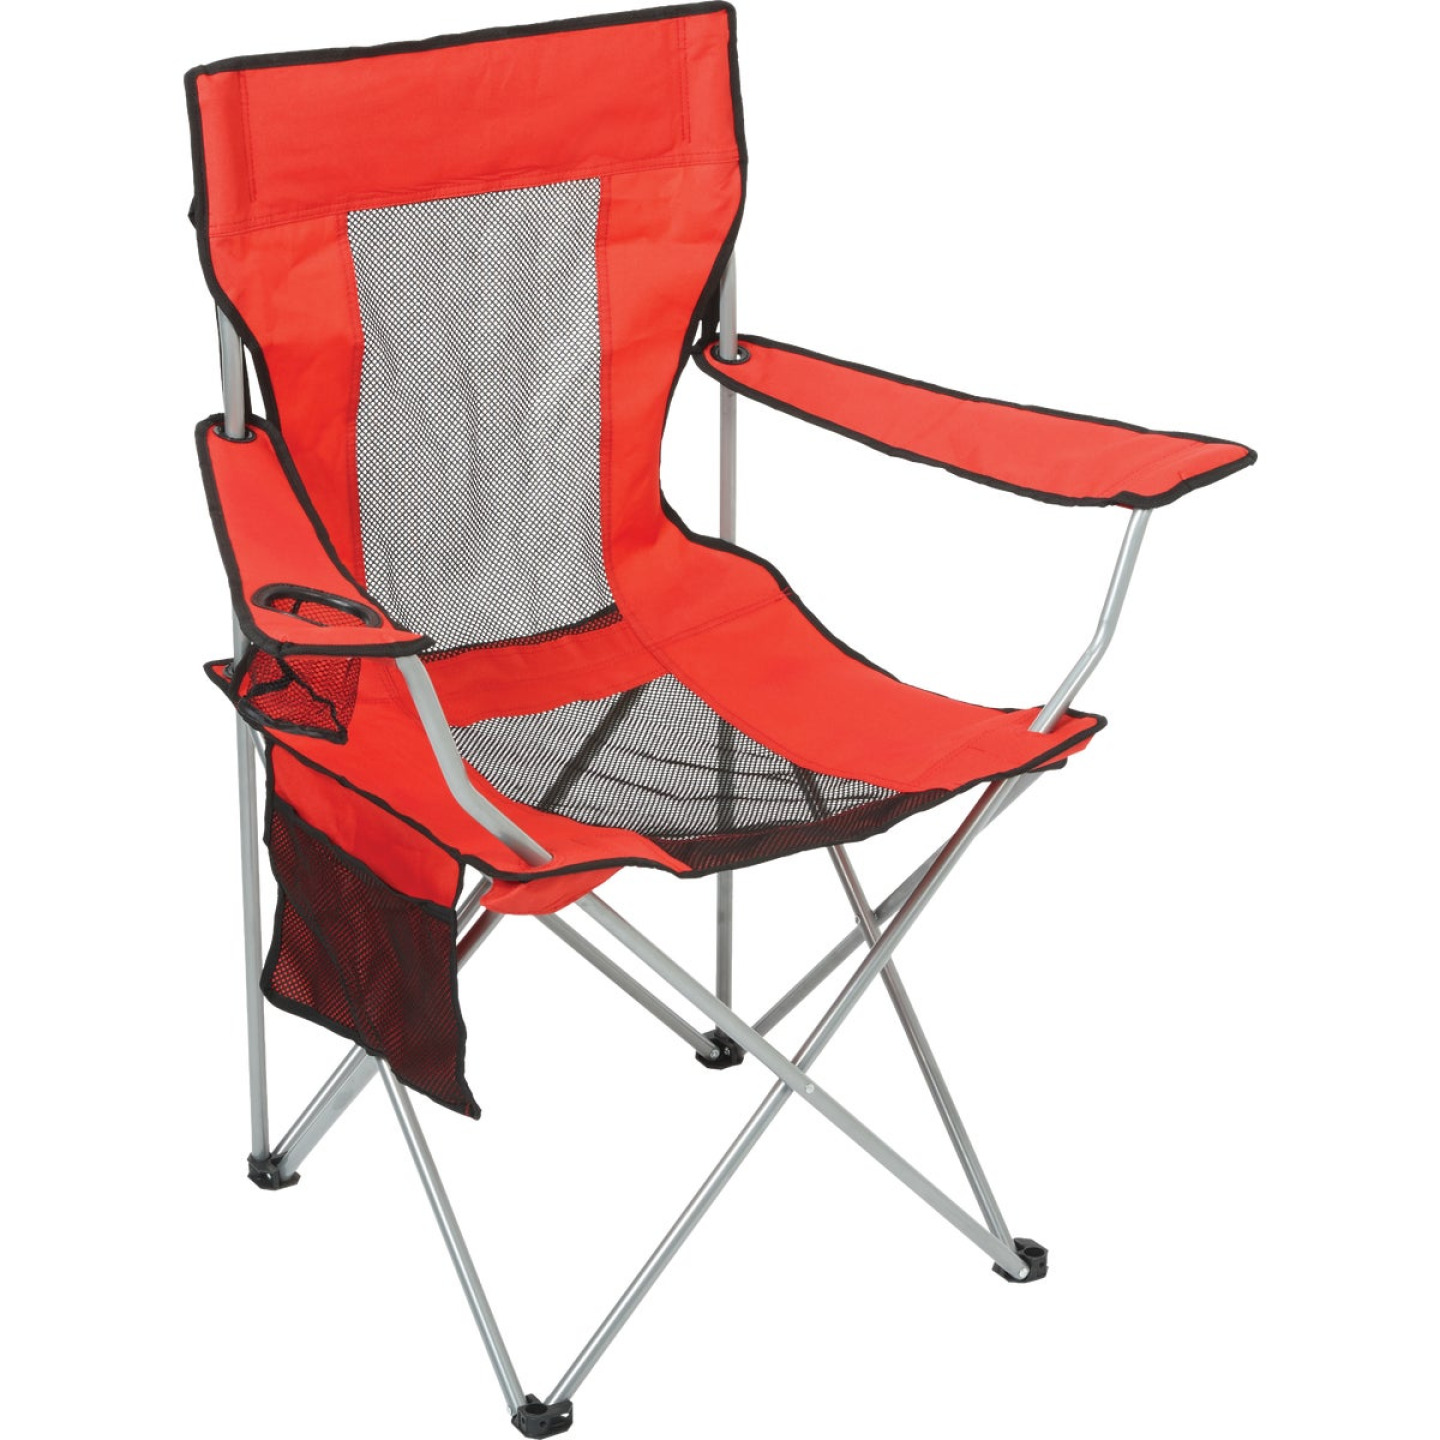 Outdoor Expressions Red Polyester Mesh Folding Chair Image 1